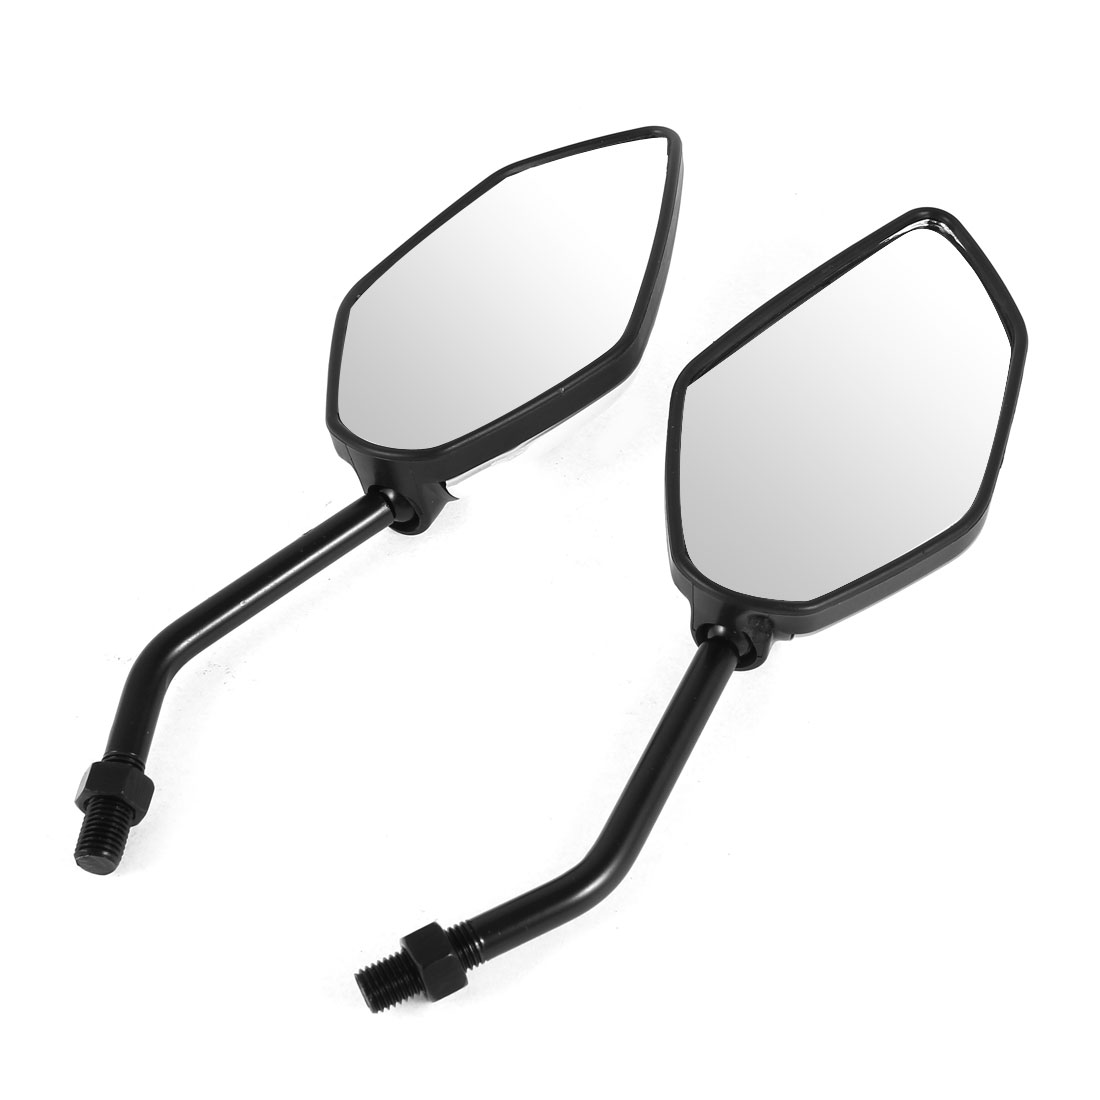 2 Pcs White Shell Motorcycle Adjustable Angle Side Rearview Blind Spot Mirrors